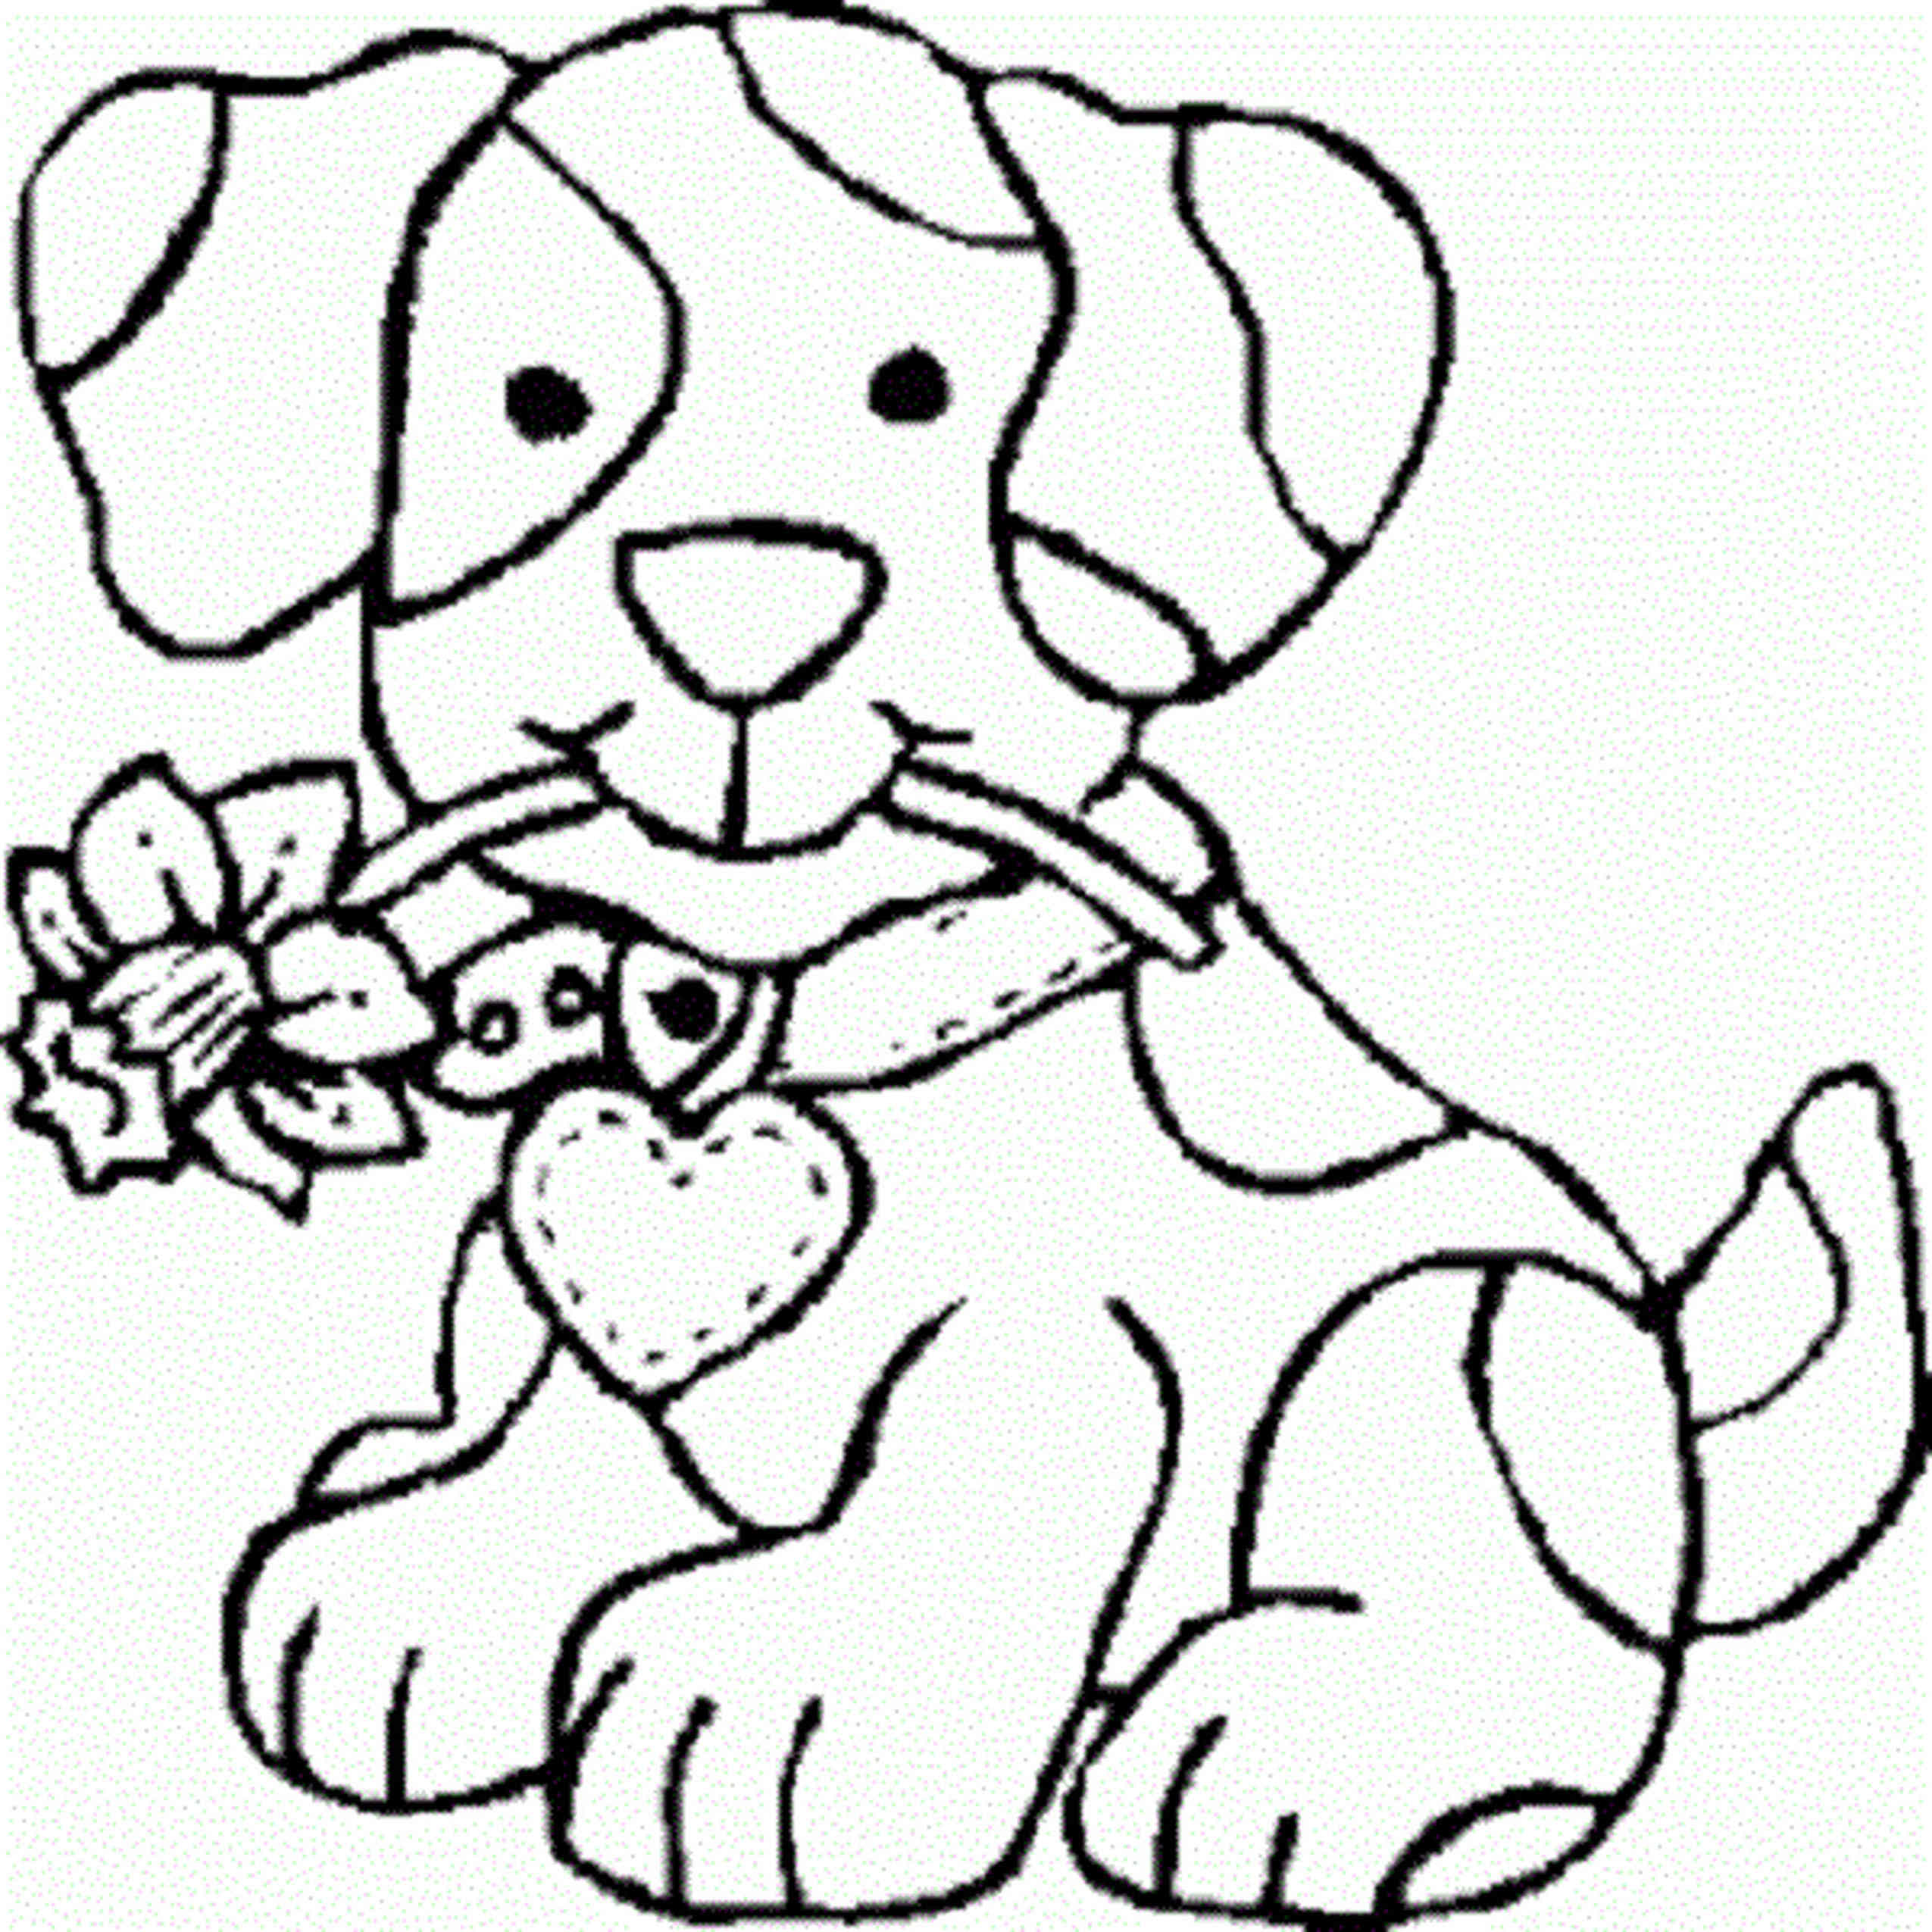 2550x2550 Coloring Pages For Teenage Girls Dog Cute